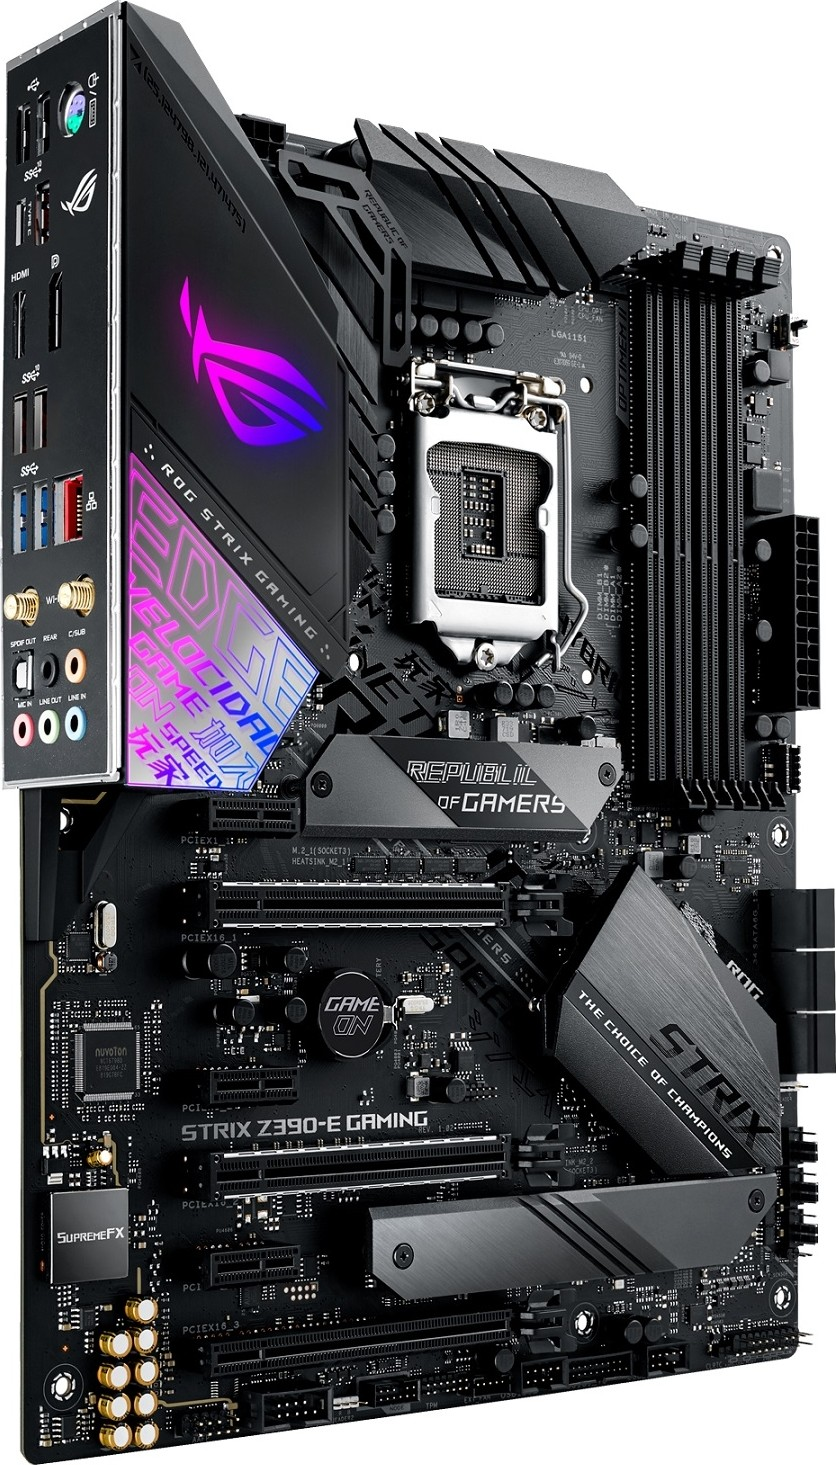 Where do i connect card reader in to mobo